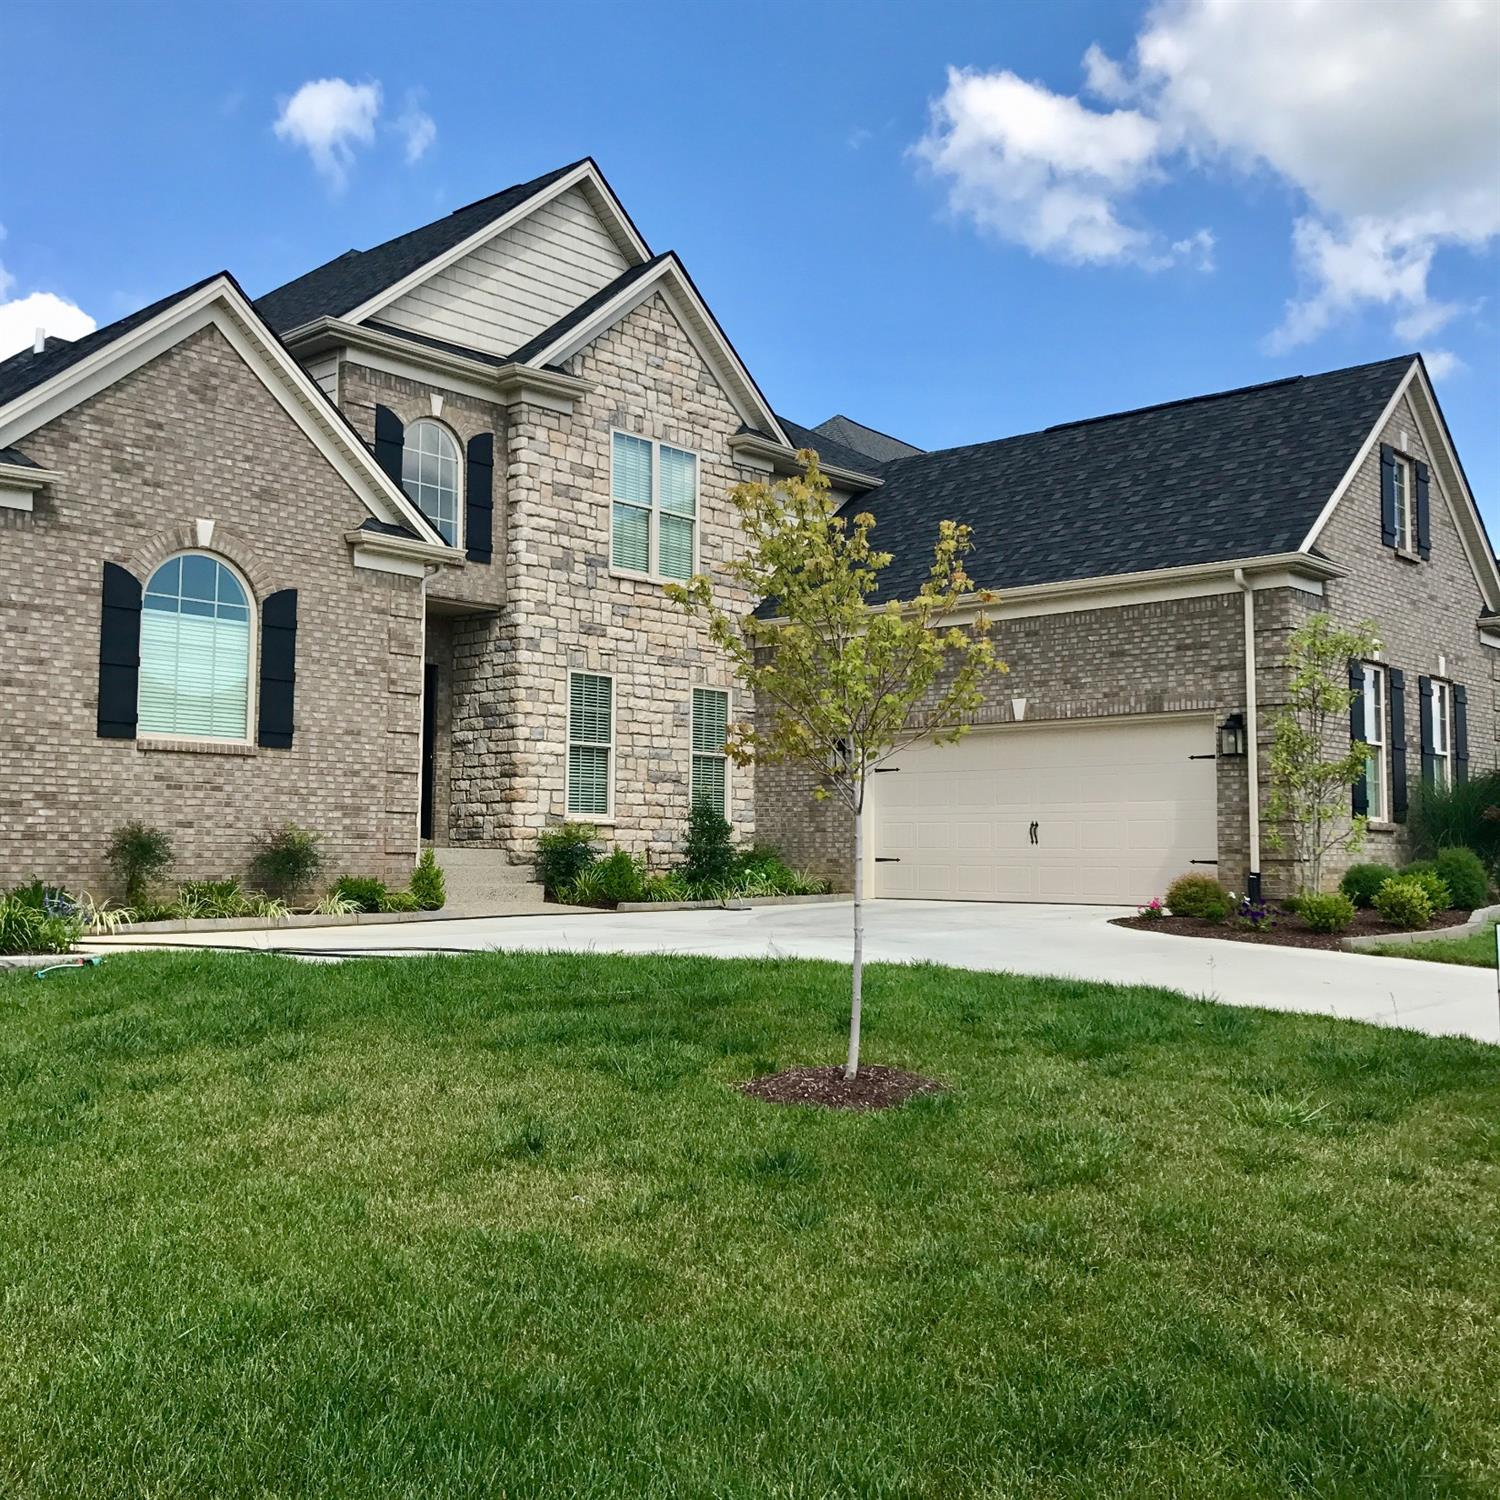 488 Weston Park, Lexington, KY 40515